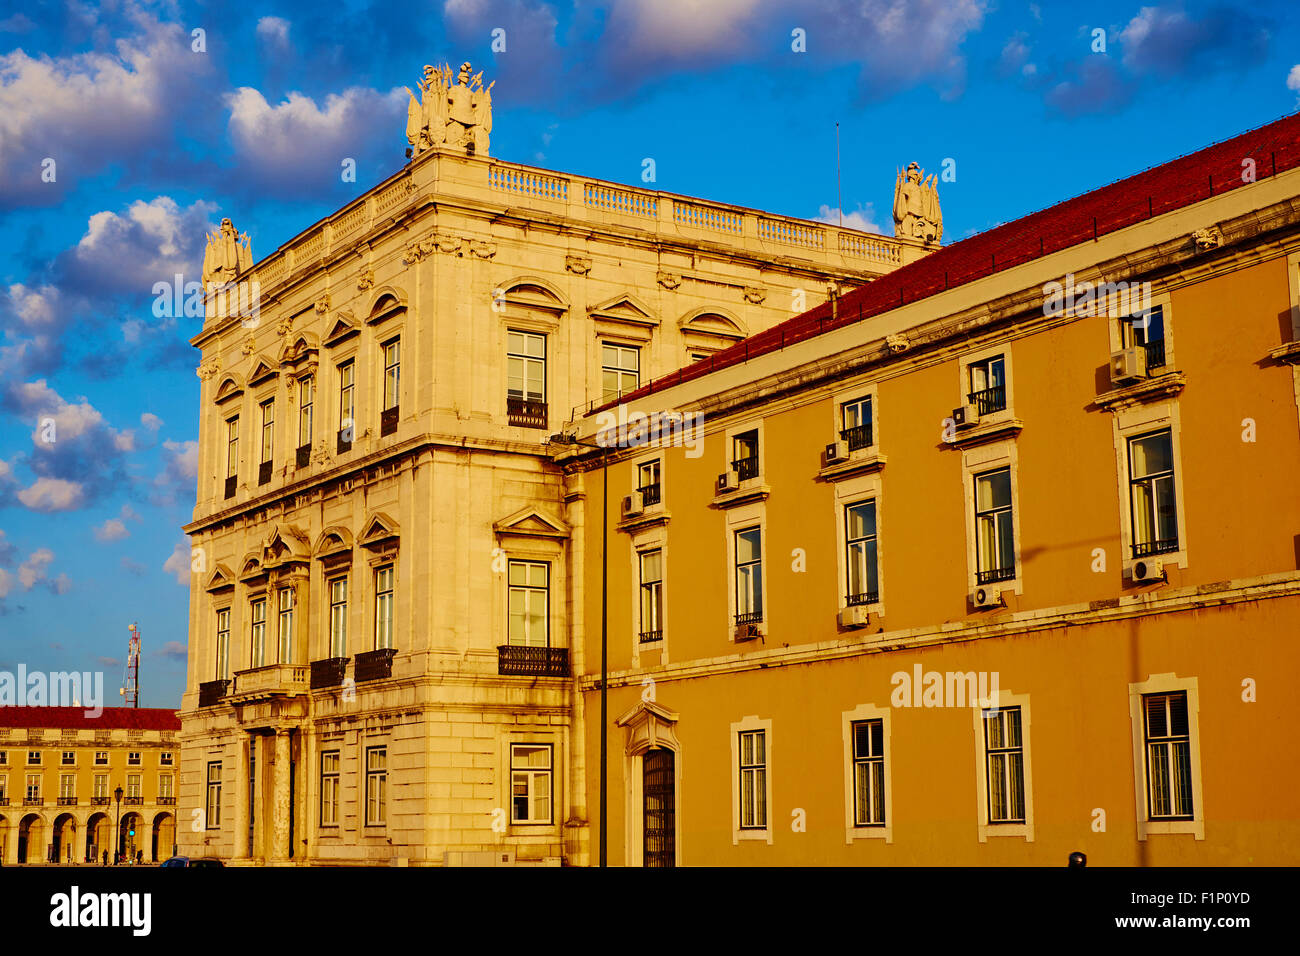 Portugal, Lisbon, Praca do Comercio, or Commerce Square. It is also known as Terreiro do Paco, or Palace Square - Stock Image